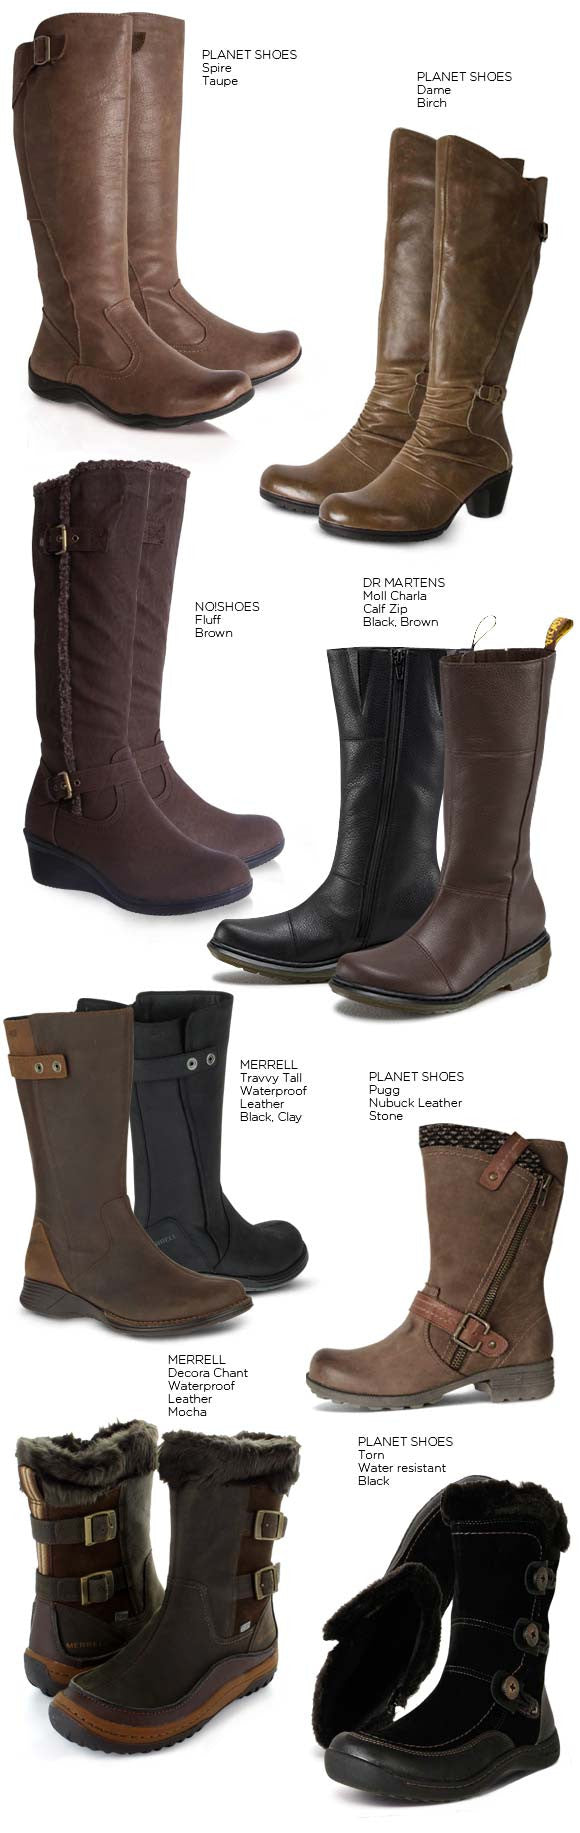 2f6f1e0ca31 BUYING BOOTS THIS SEASON | TheShoeLink